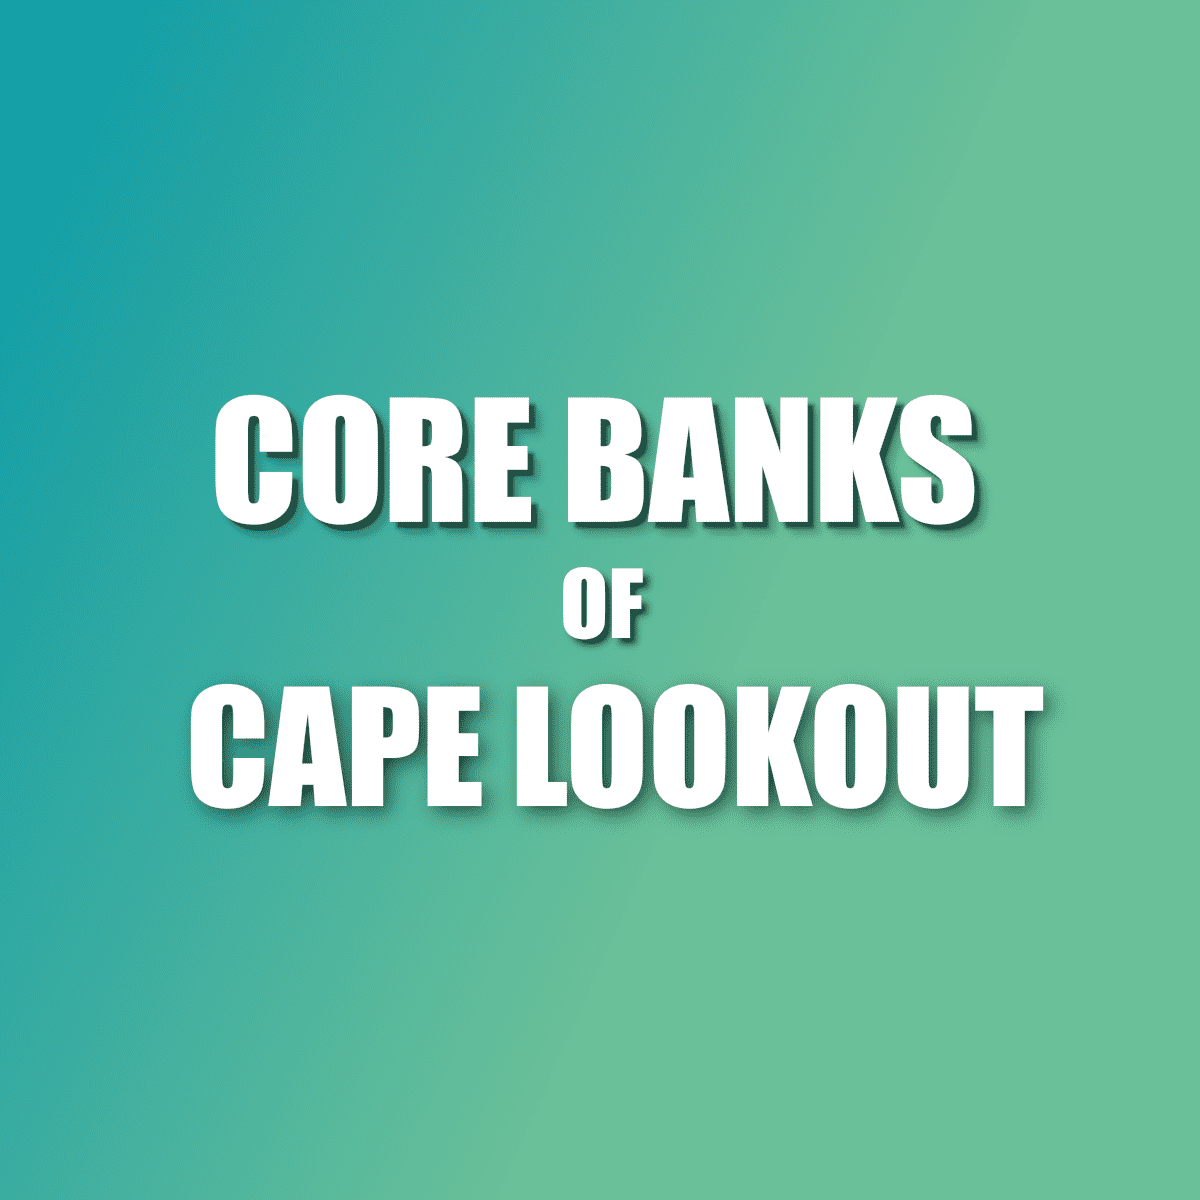 Cape Lookout Core Banks discussions